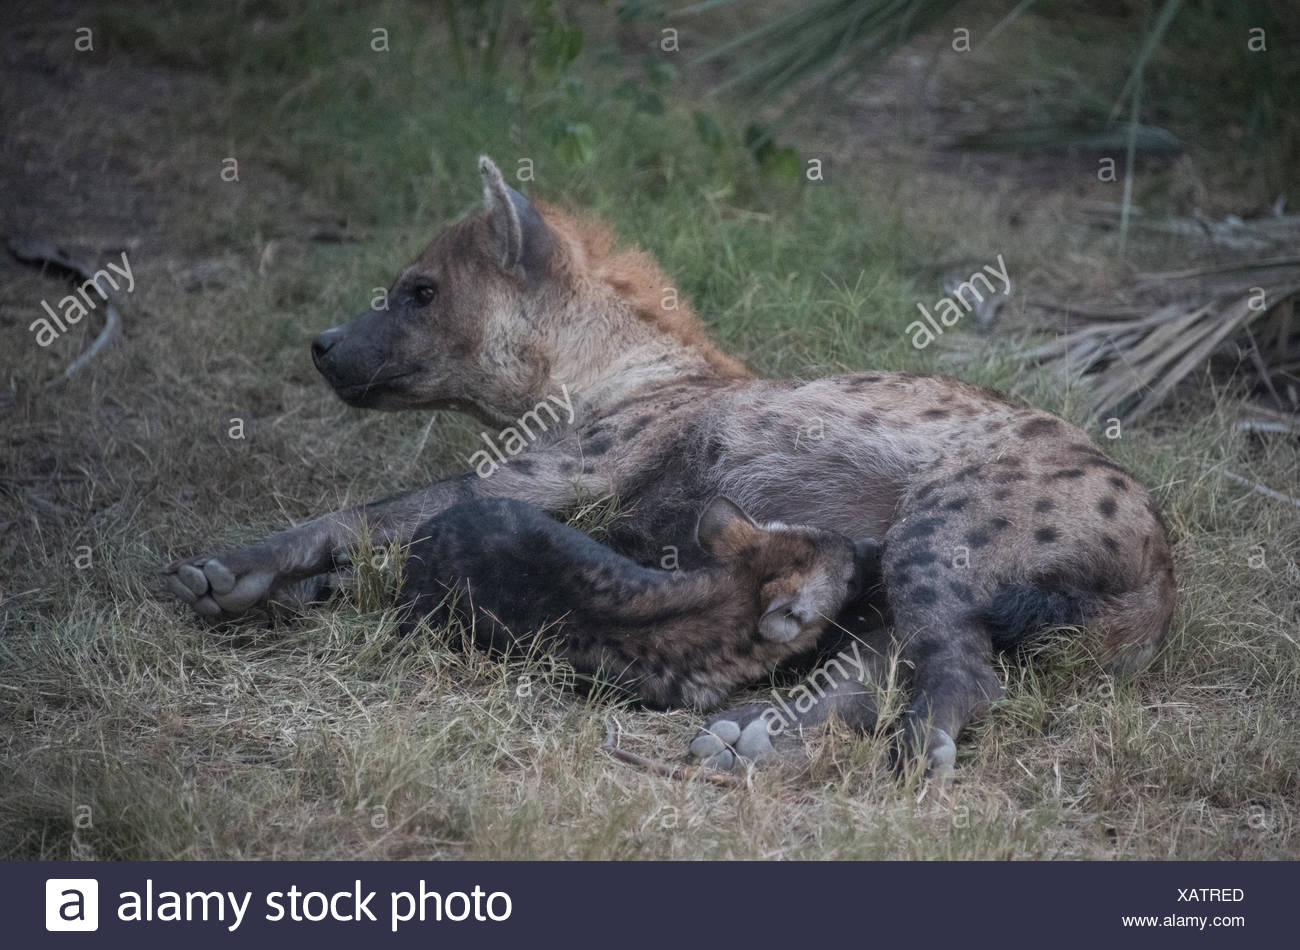 A spotted hyena nursing her cub. - Stock Image